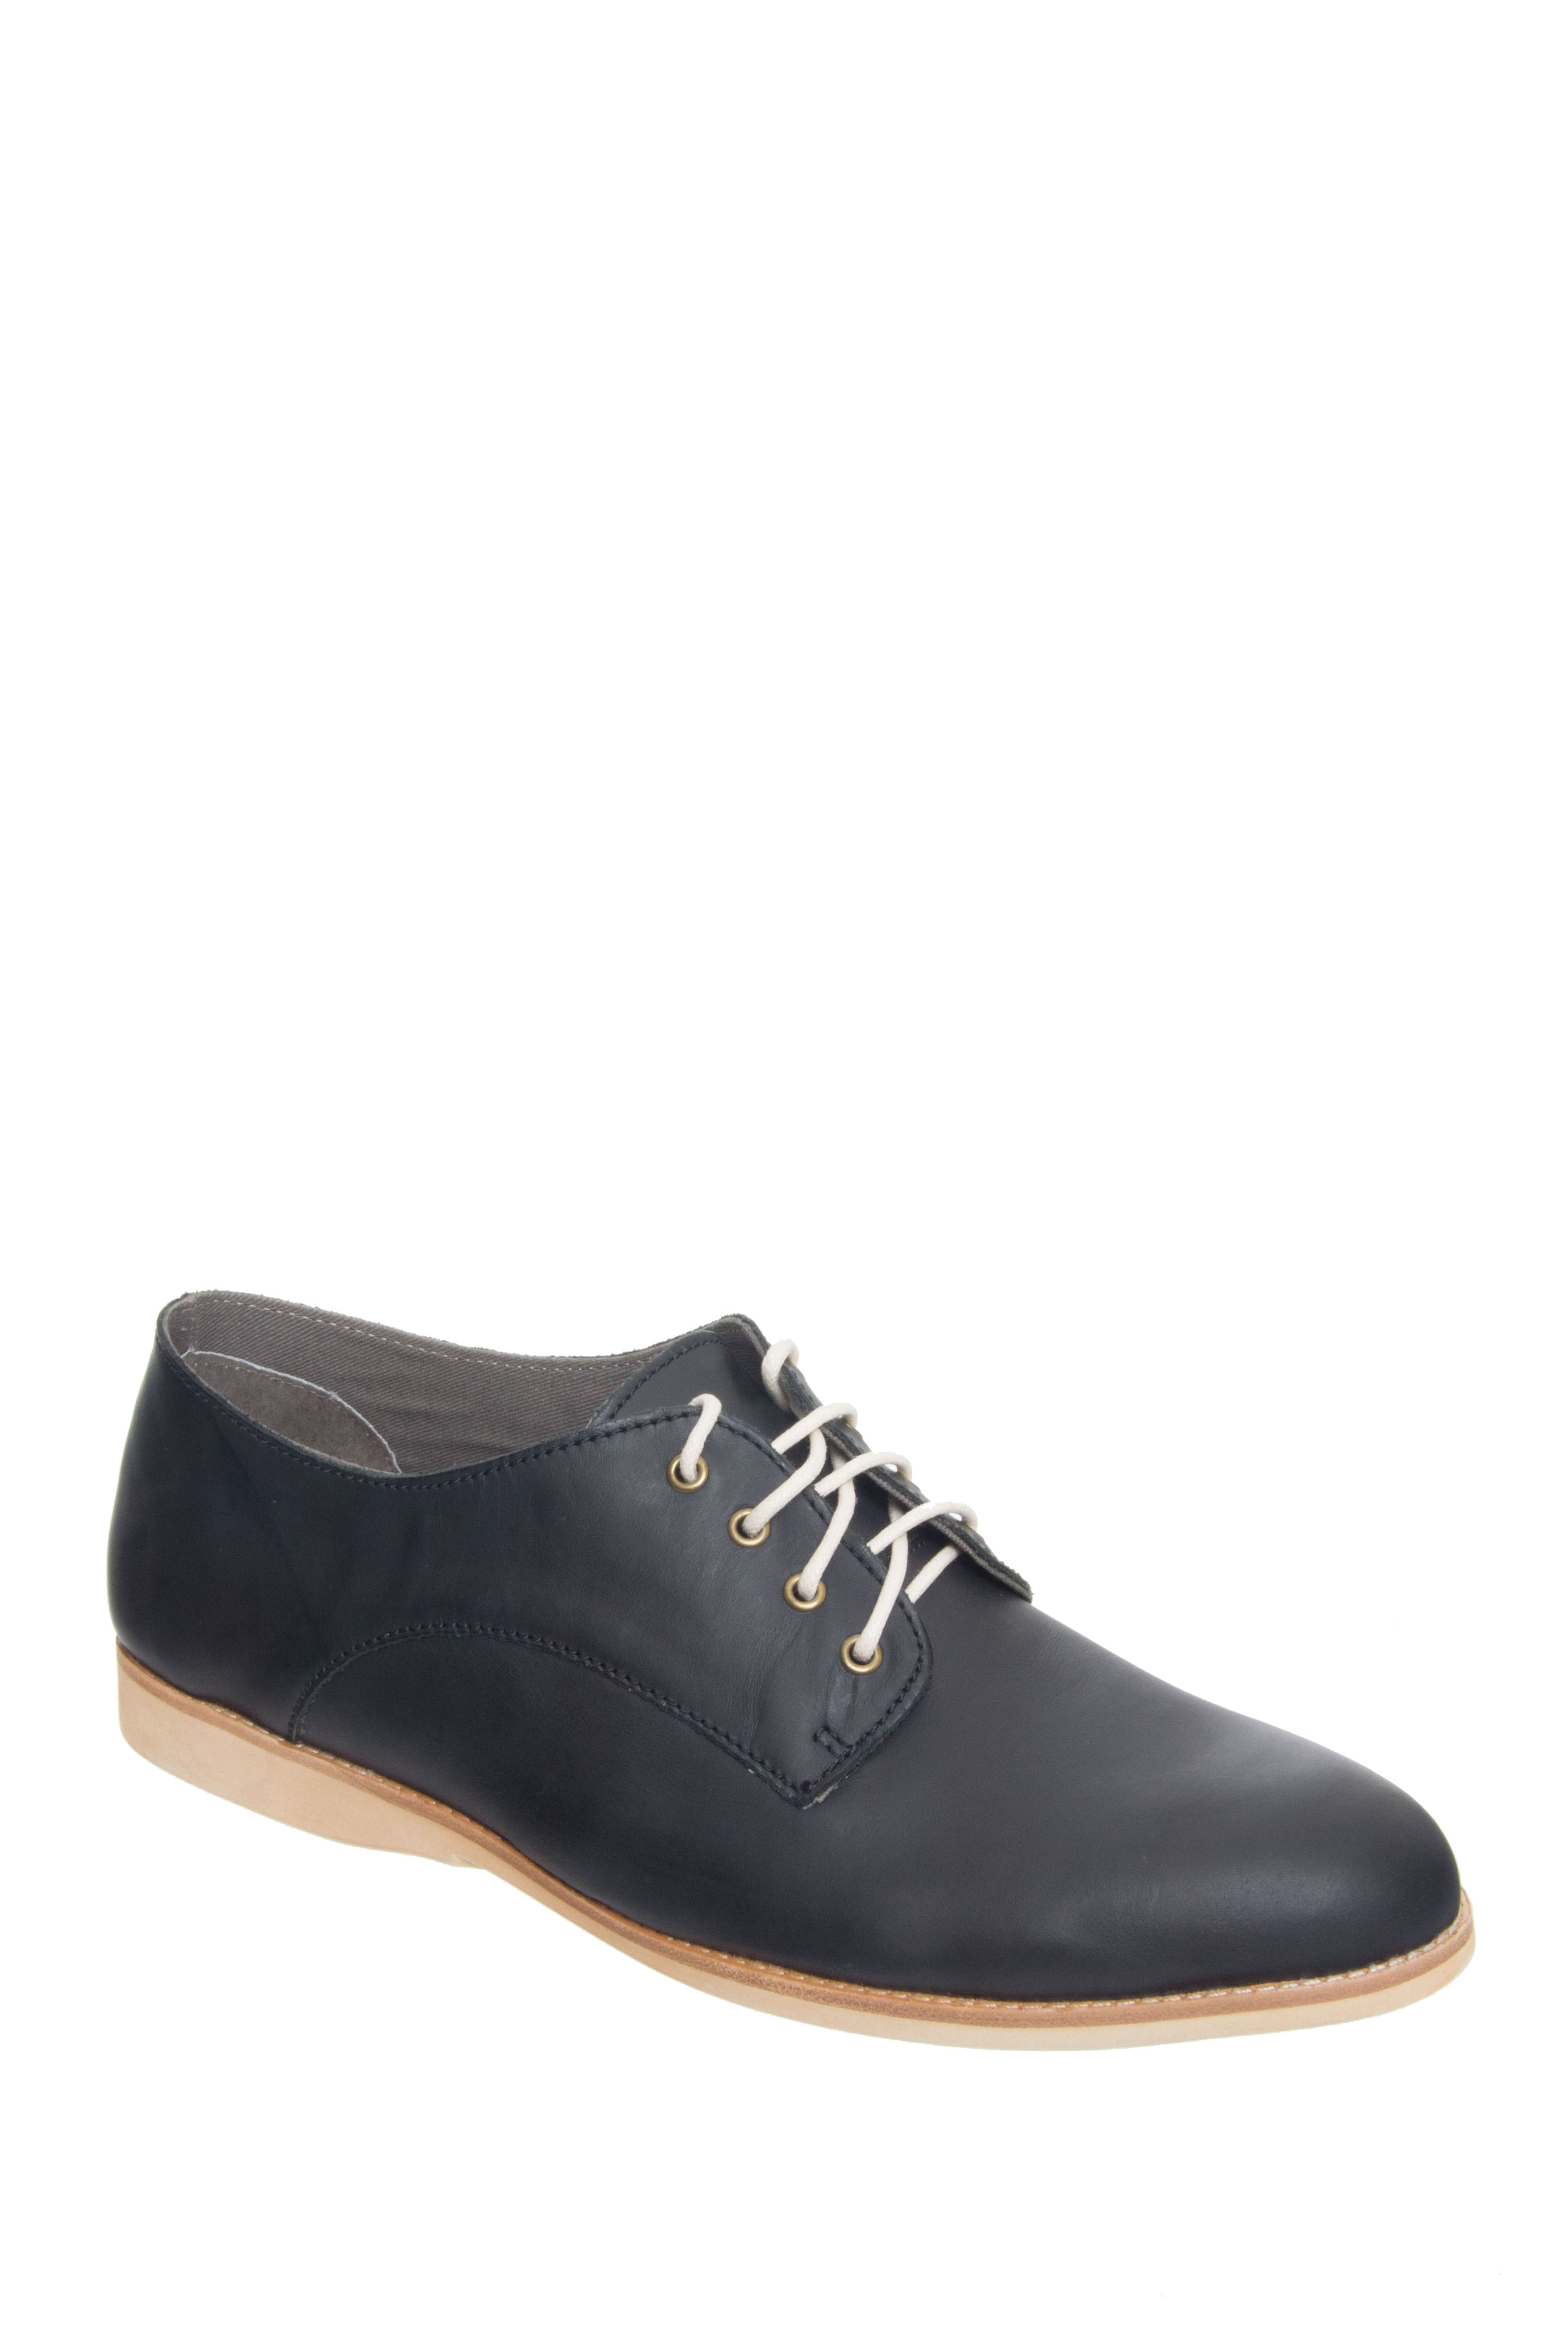 ROLLIE NATION Unisex Derby Low Heel Oxford - Black